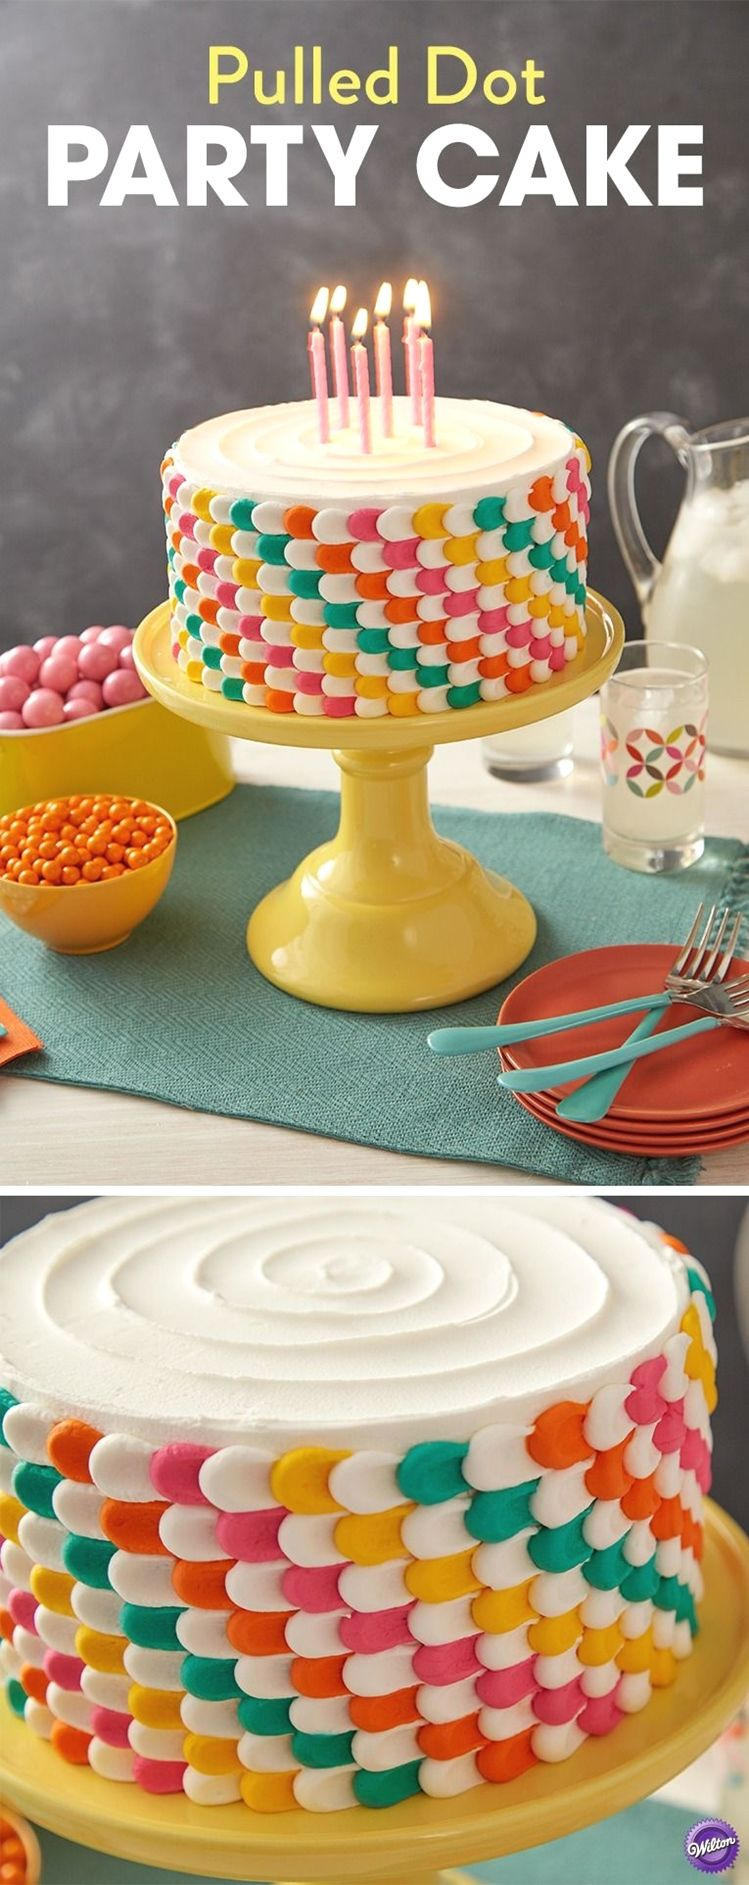 Simple Round Cake Decorating Ideas Simplecakedecorating With